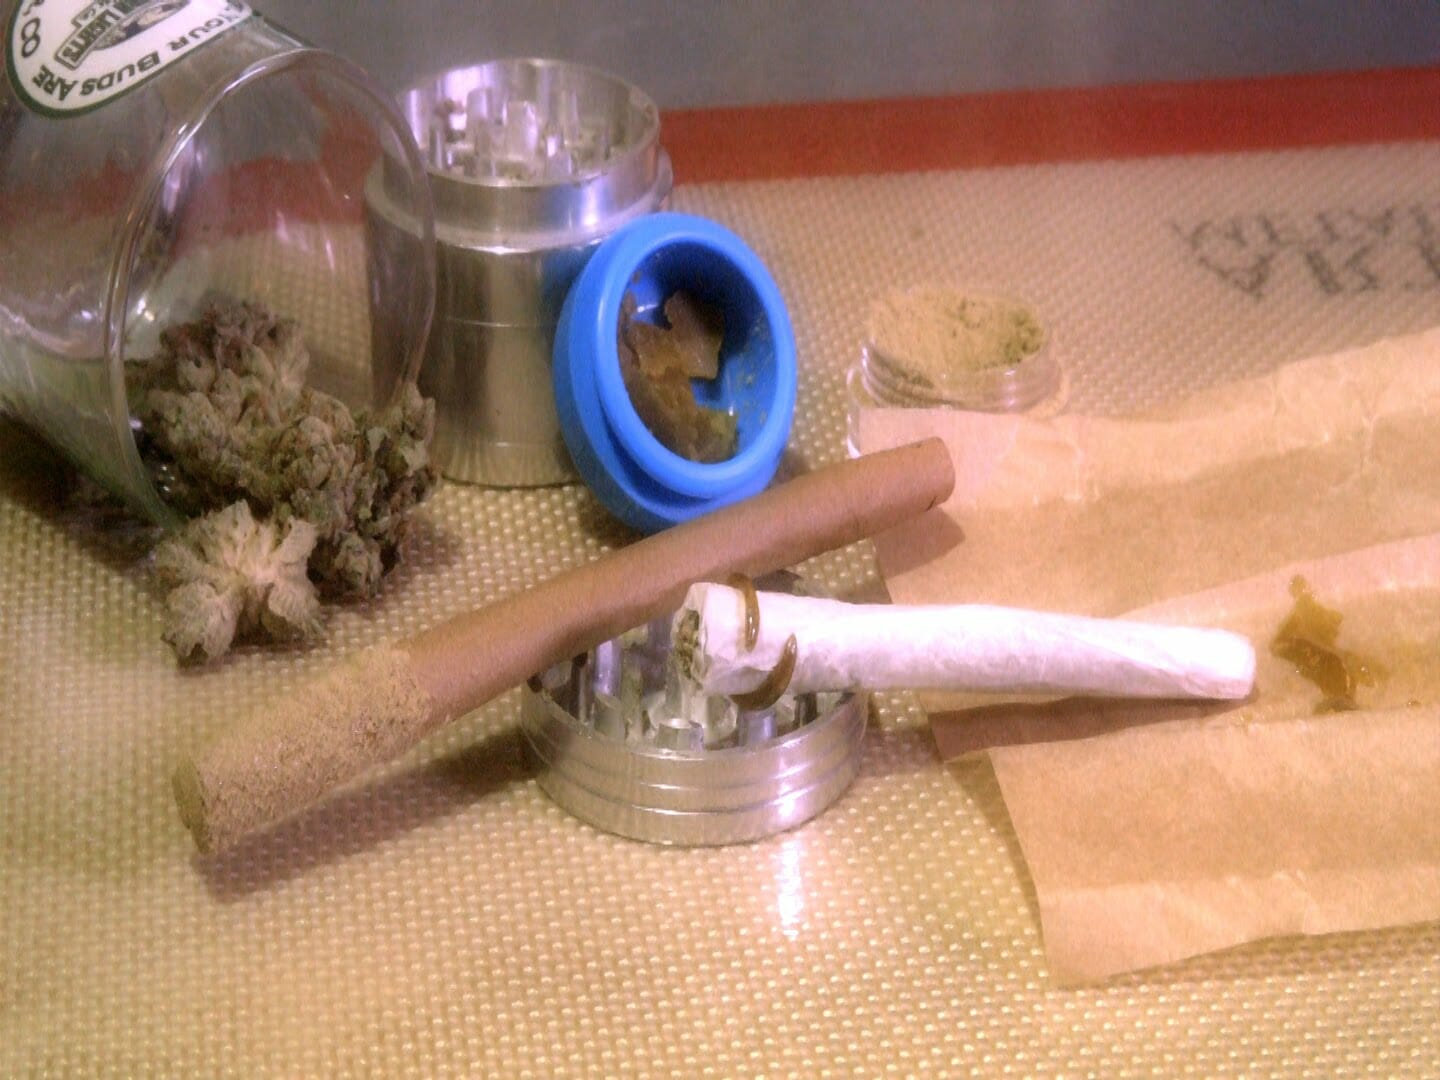 710 Tips & Tricks #1: How to Twax cannabis concentrates & flowers bowls, blunts & joints